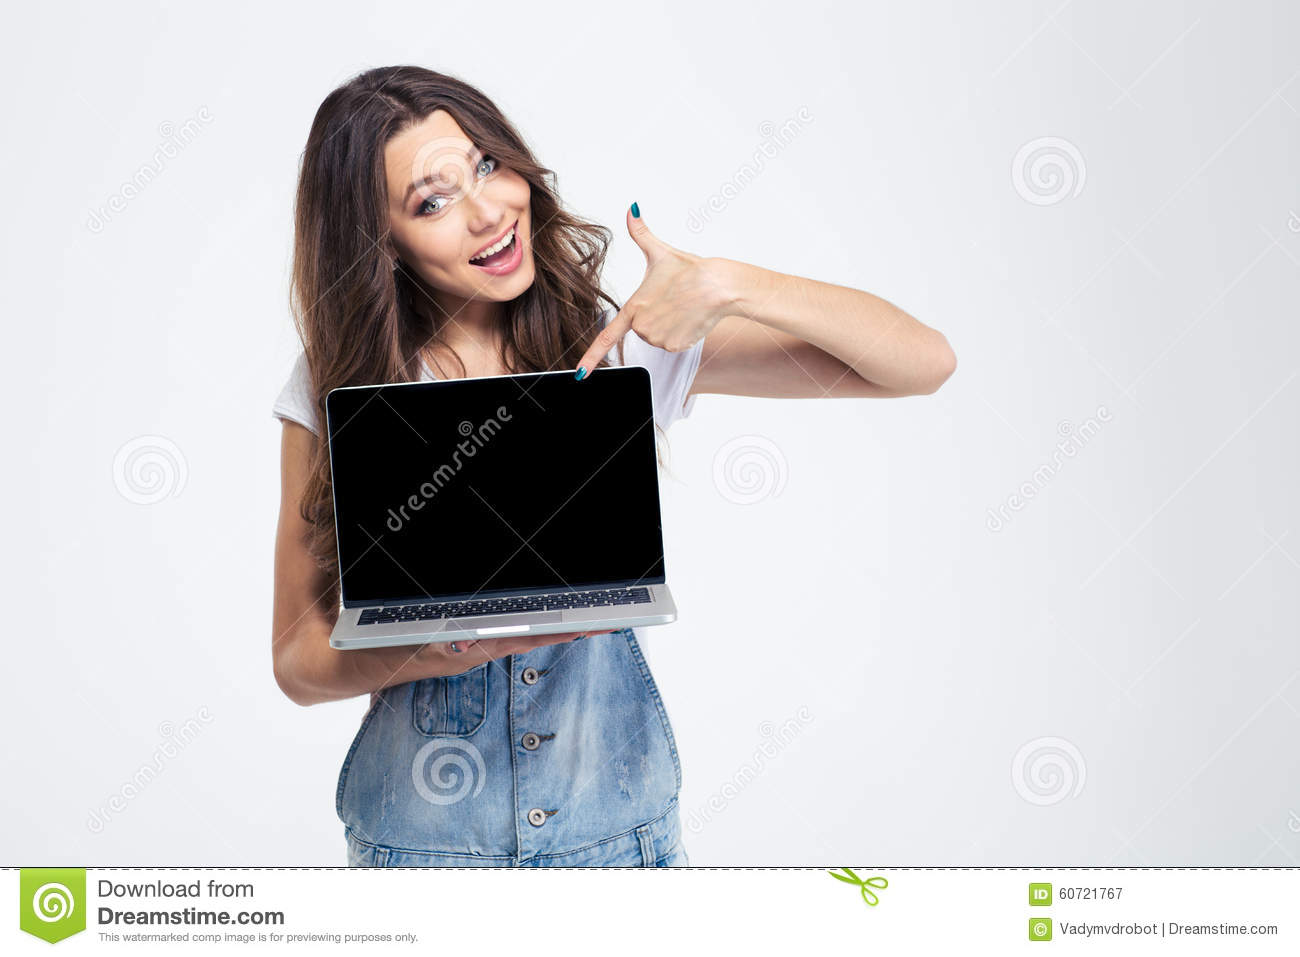 Cheerful girl showing blank laptop computer screen